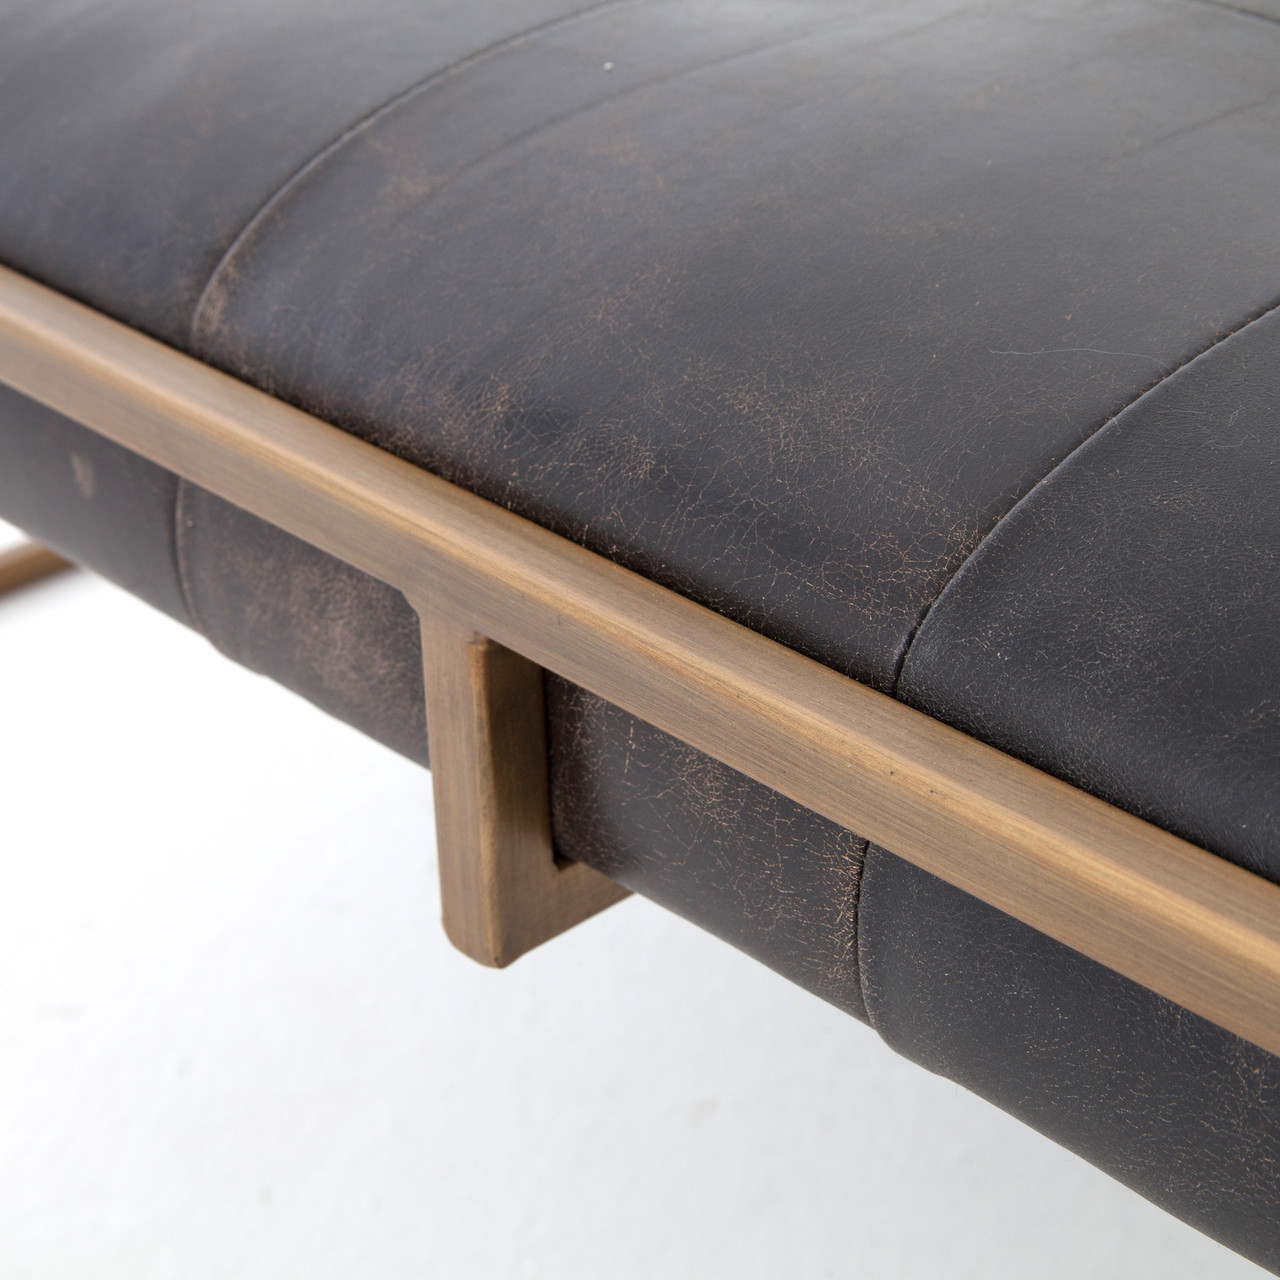 Suffolk Simplicity Reclaimed Wood Square Industrial Coffee: Oxford Tufted Black Leather Square Ottoman Coffee Table